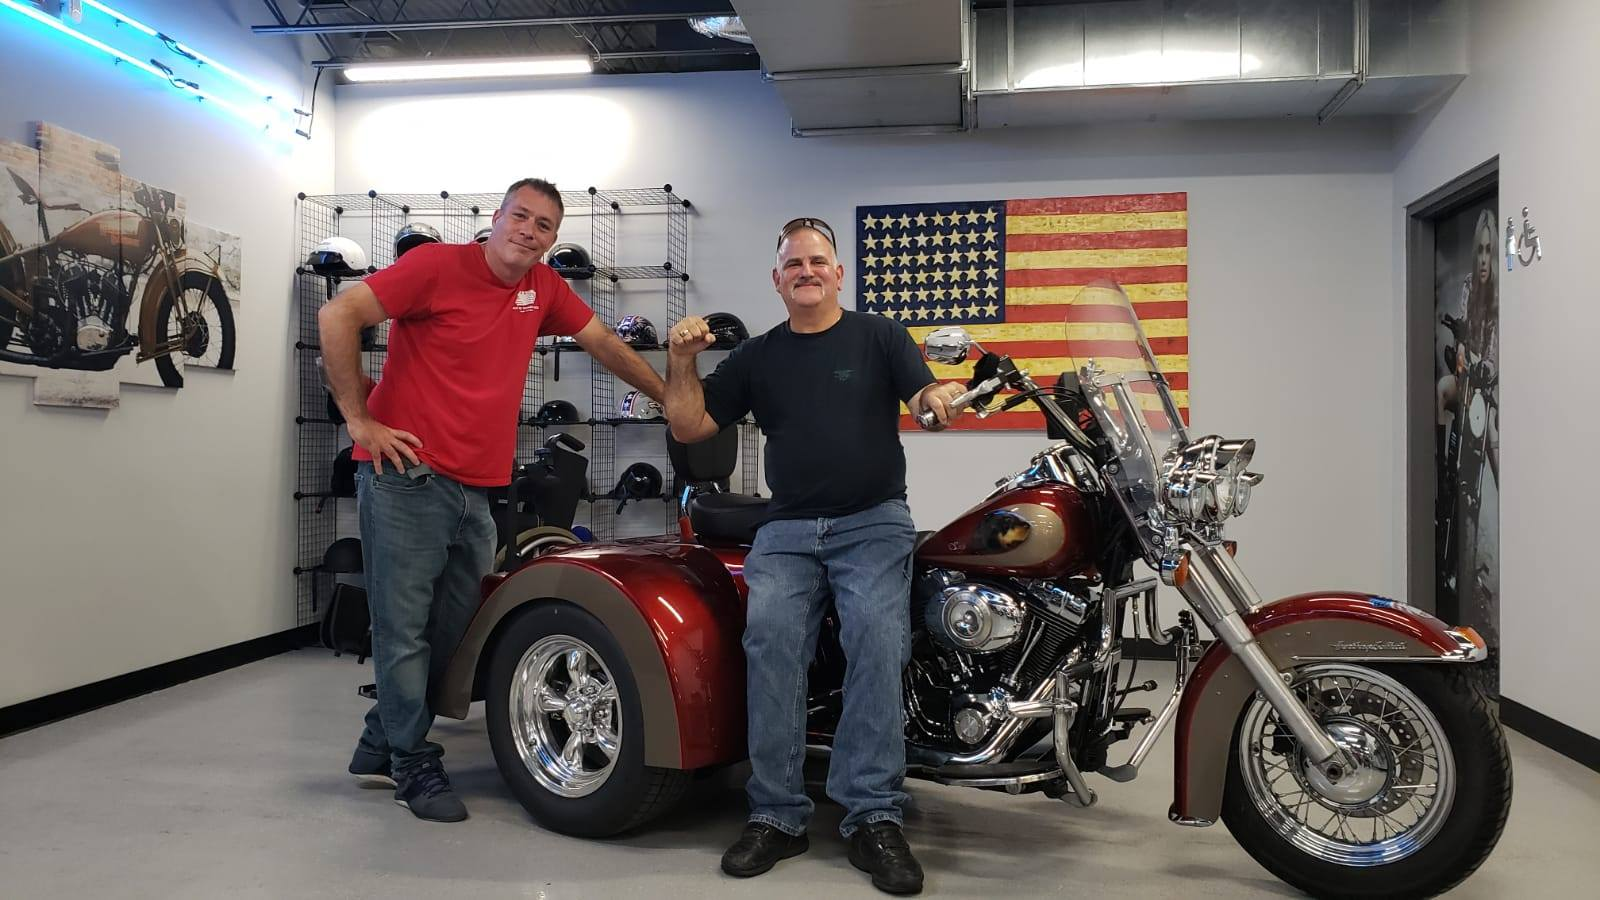 Jim Schombs at Haus of Trikes & Bikes